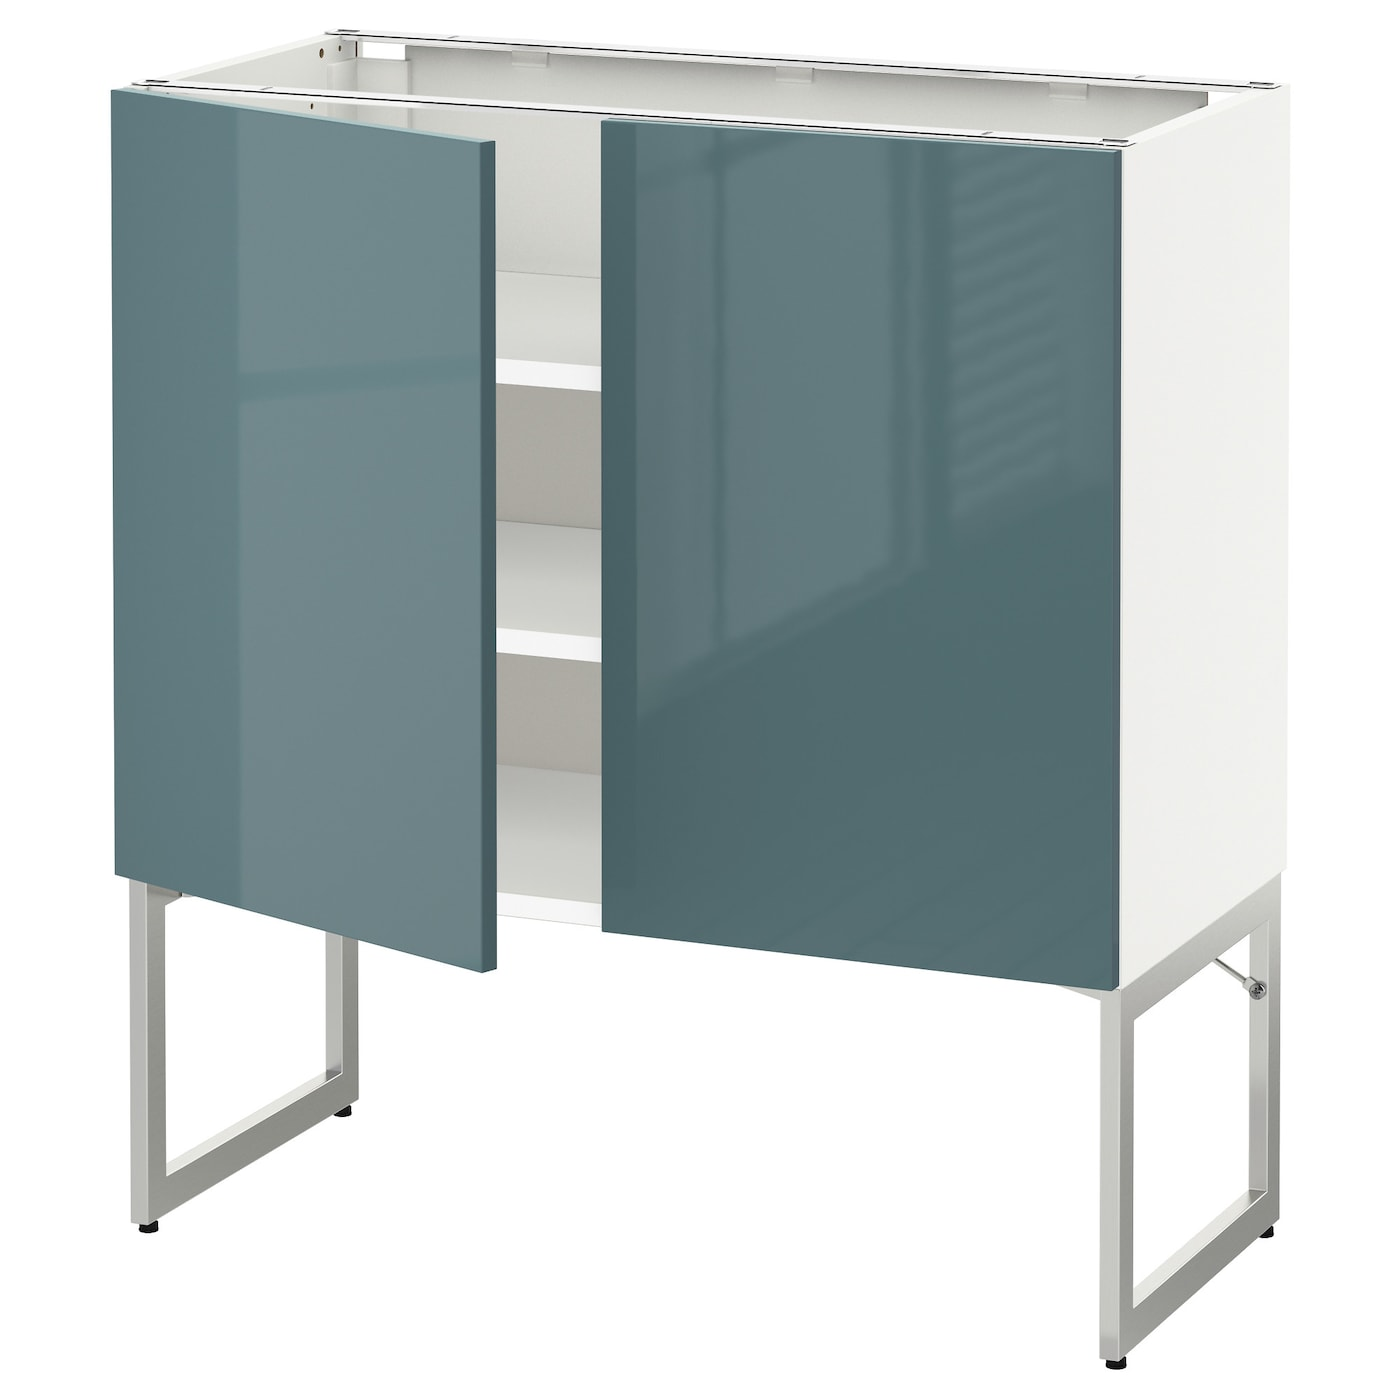 Metod base cabinet with shelves 2 doors white kallarp grey for Ikea turquoise shelf